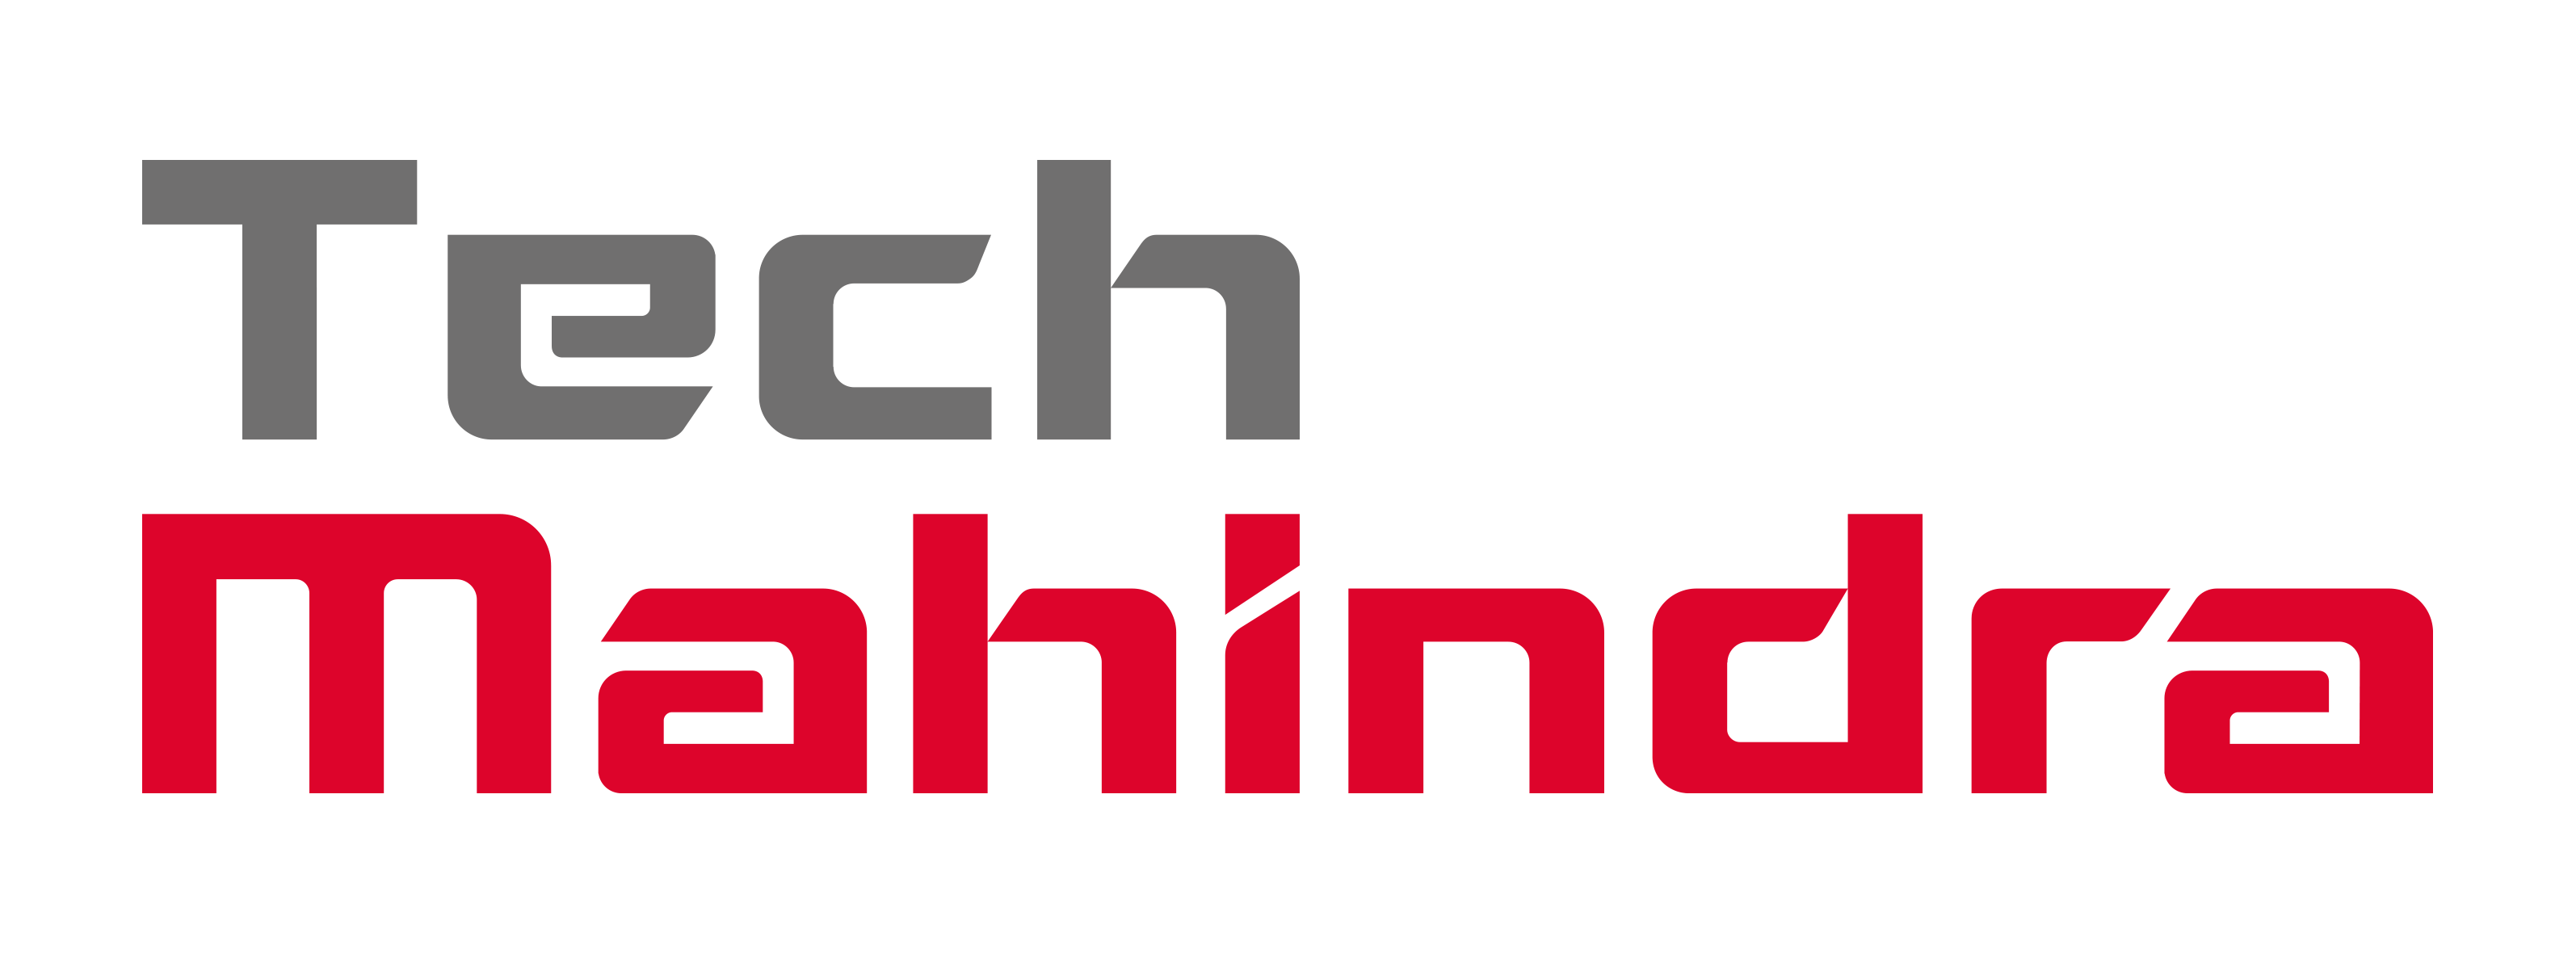 Tech Mahindra Named Leader in Cybersecurity Solutions & Services in 2021 ISG Provider Lens™ Quadrant Report